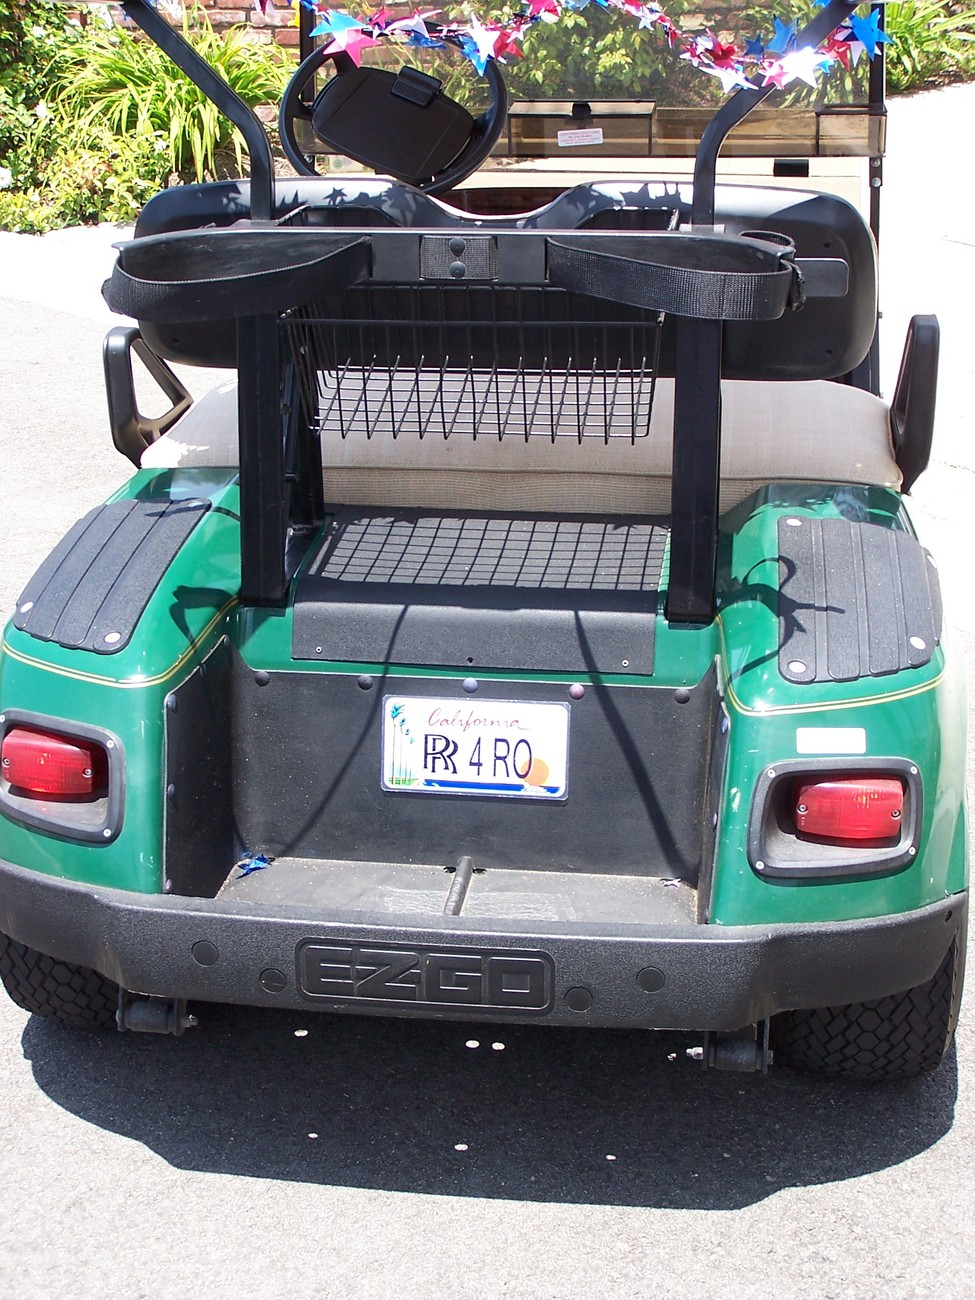 Custom Personalized Illinois golf cart, mobility scooter license, go cart plate